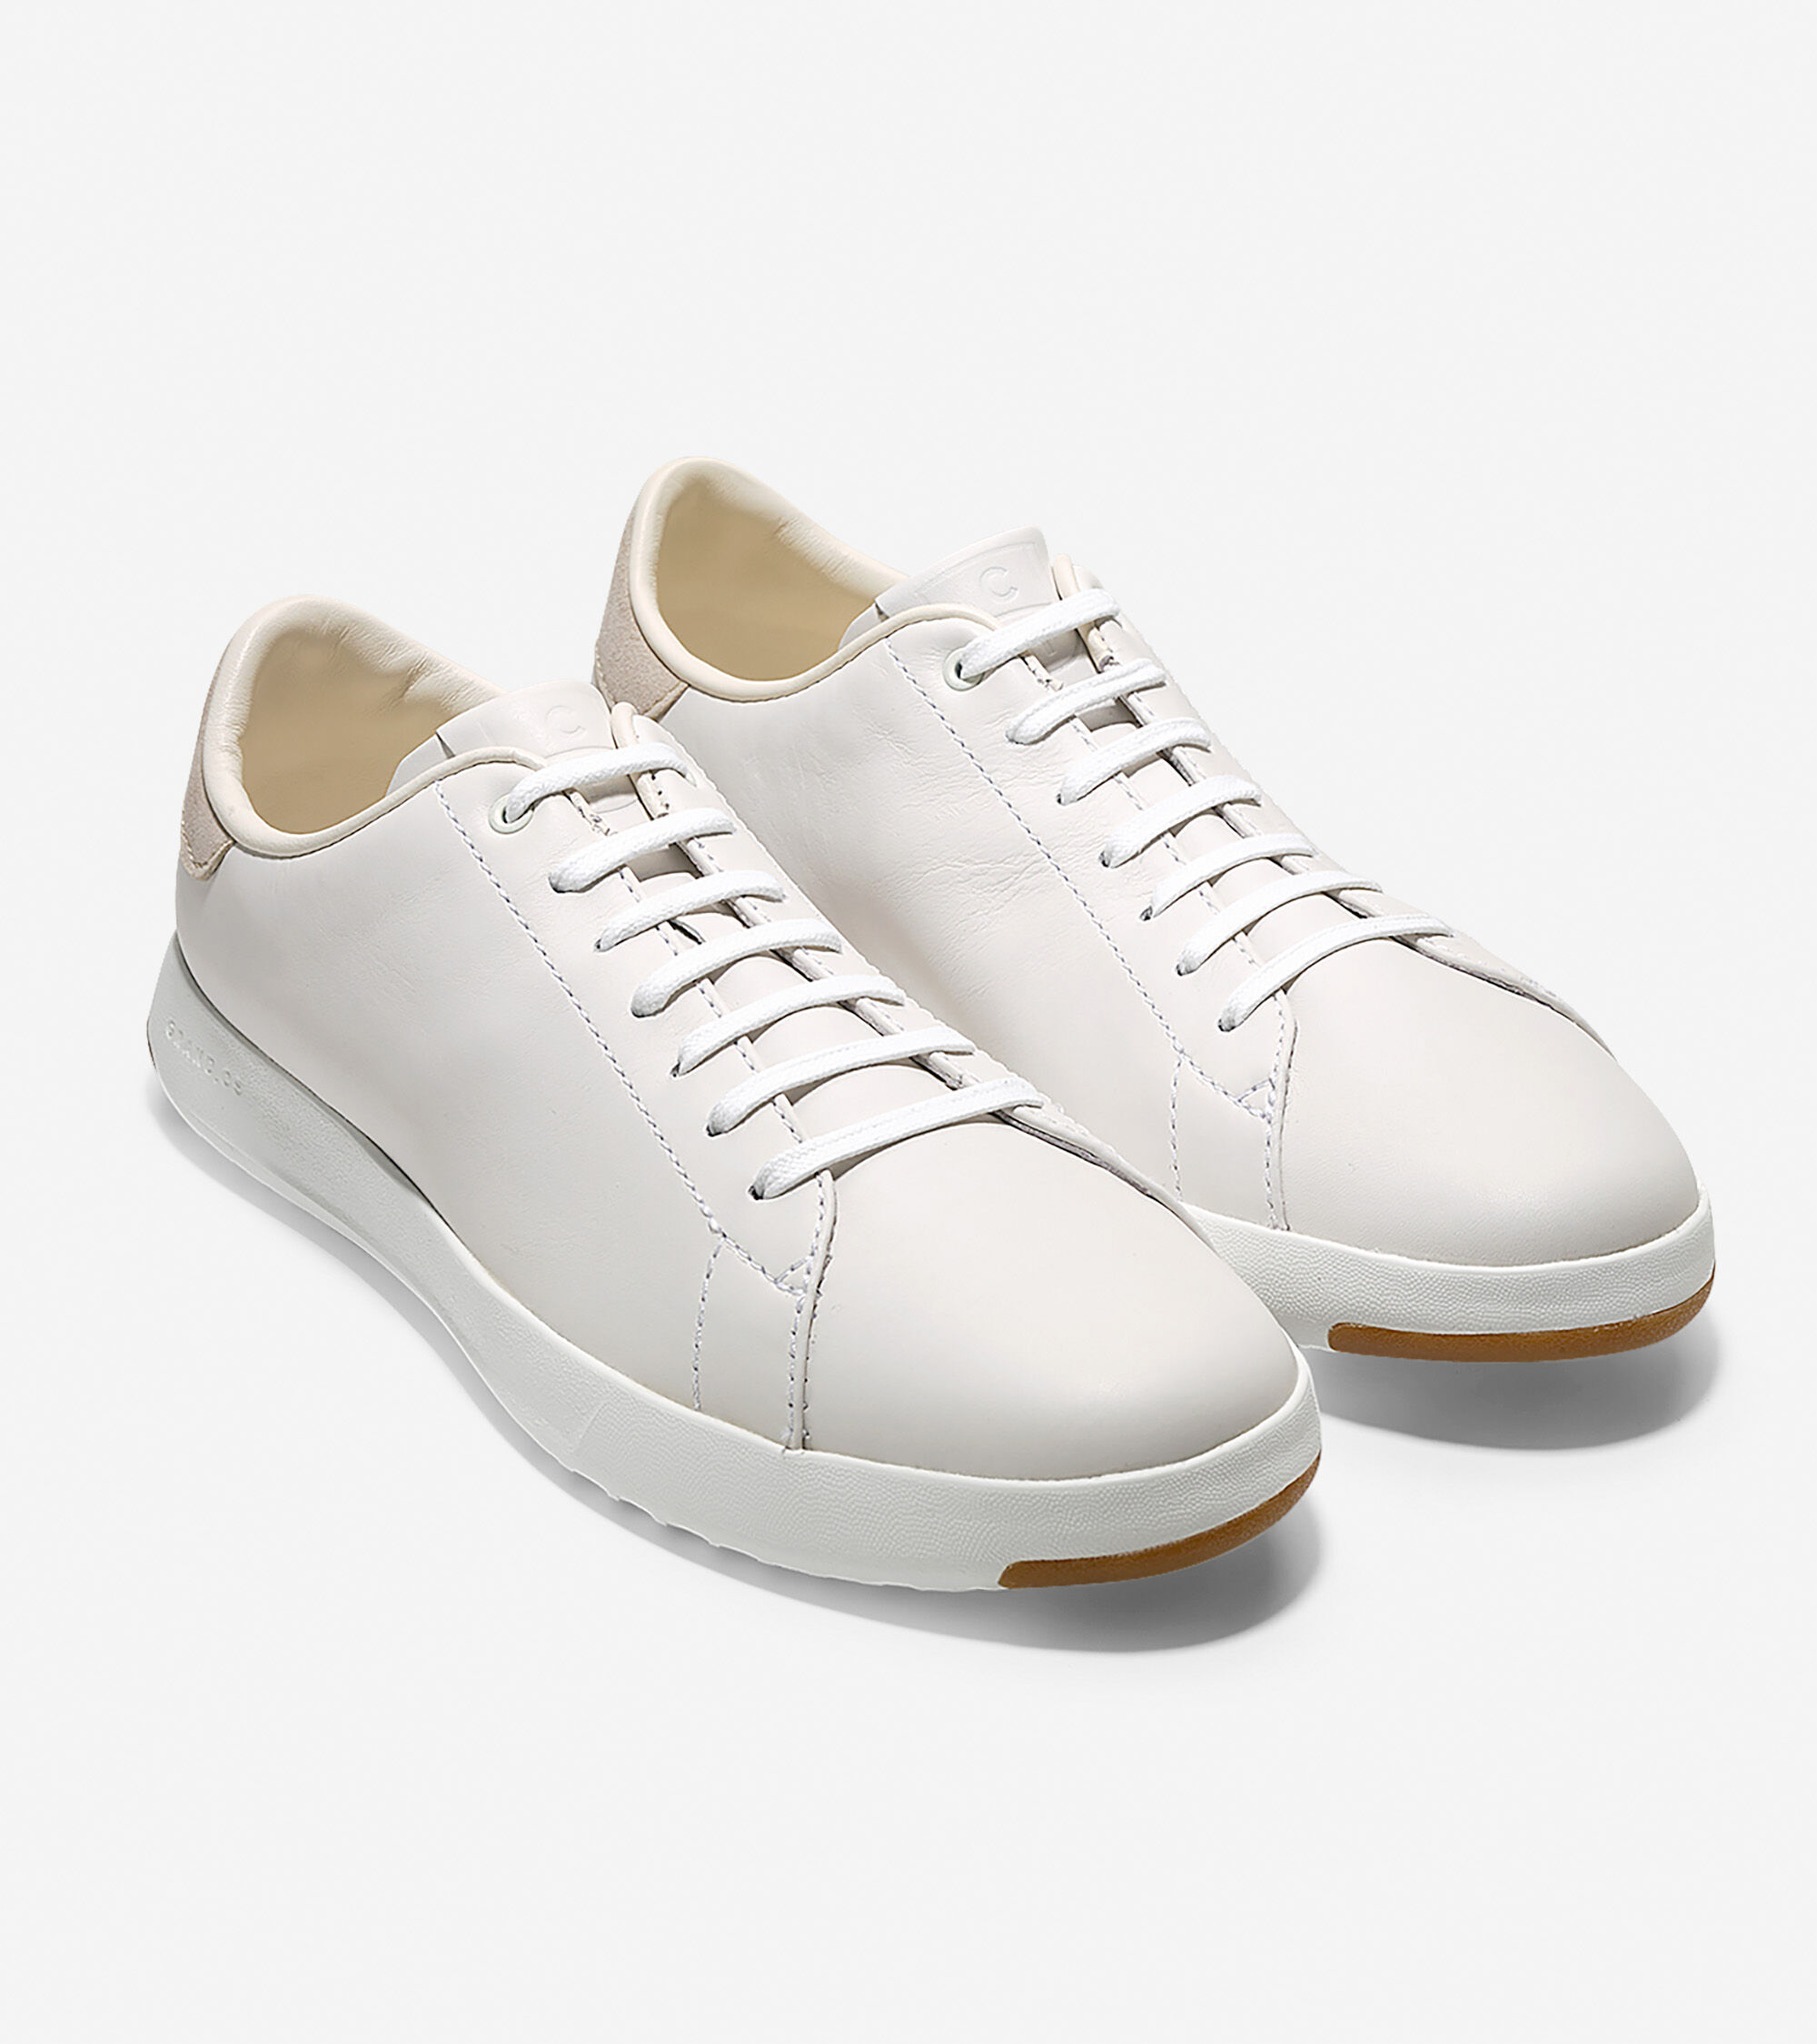 5cc8be3a4a064 Mens GrandPro Tennis Sneakers in White | Cole Haan